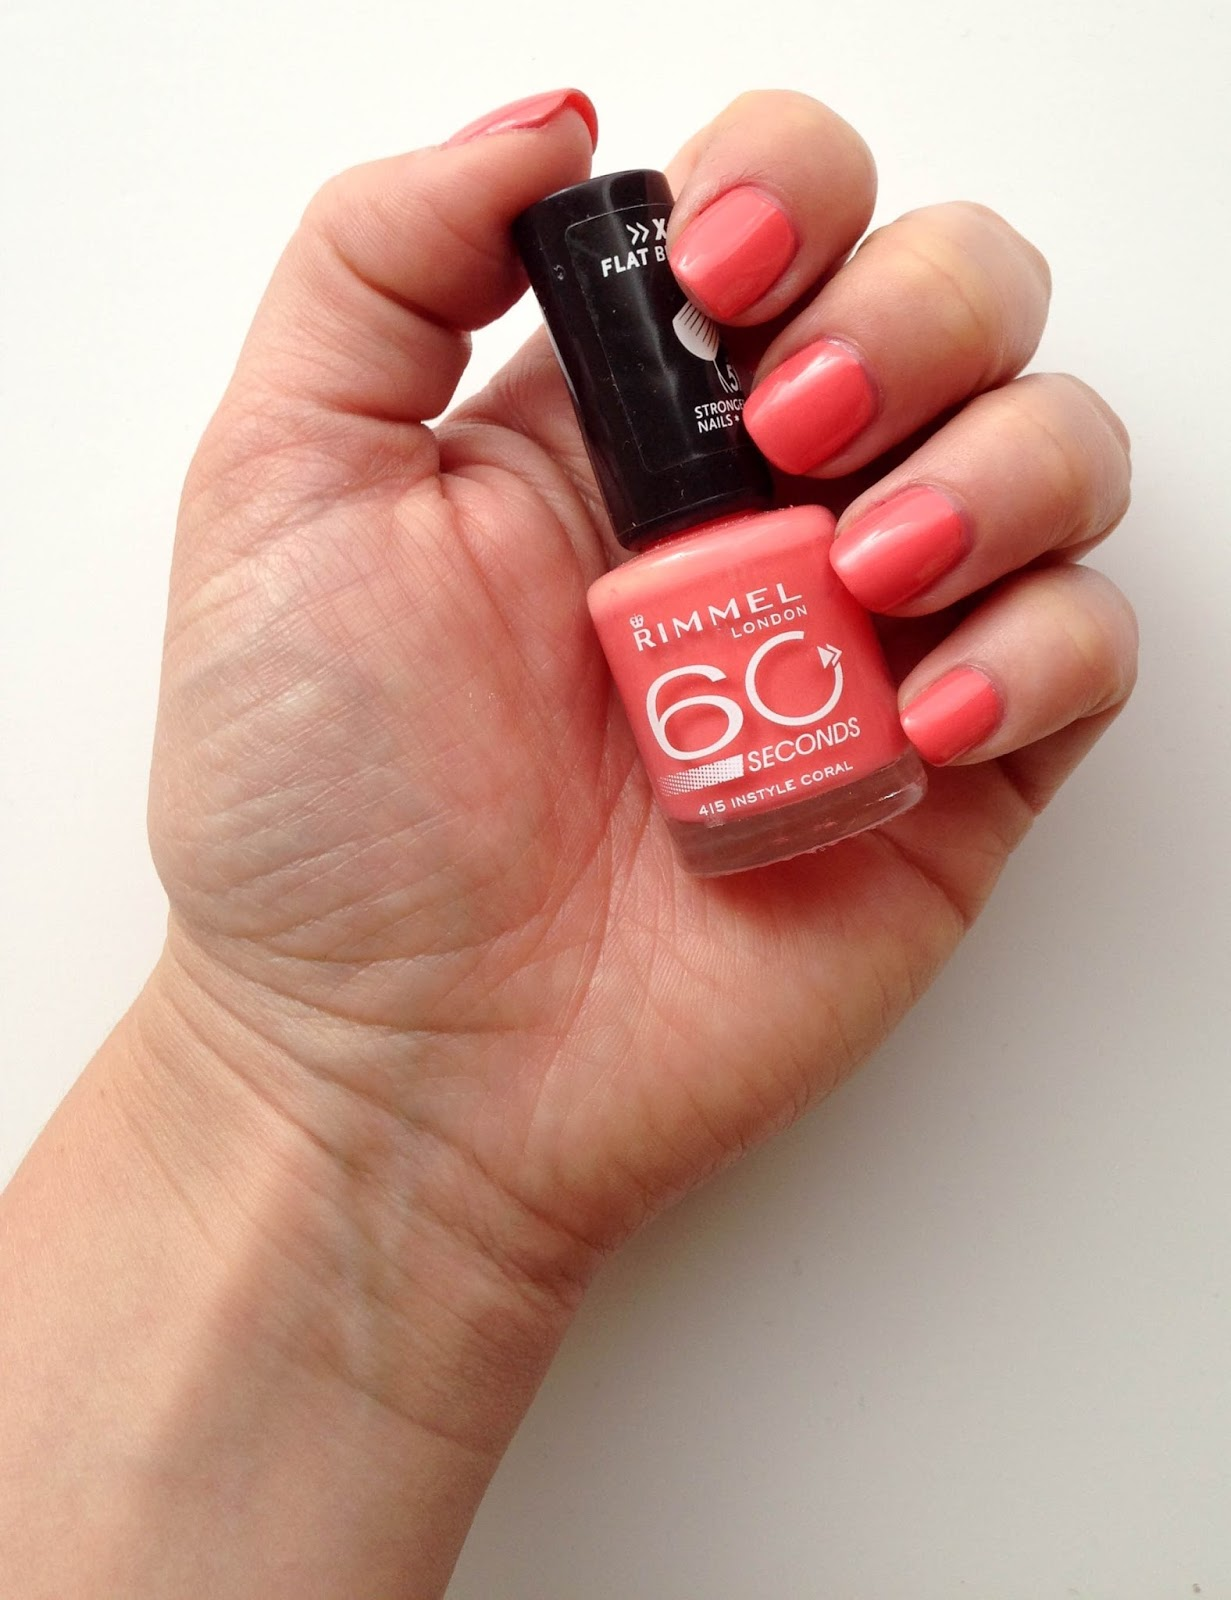 NOTD: Rimmel London 60 seconds in Instyle Coral | Wrinkles And Heels